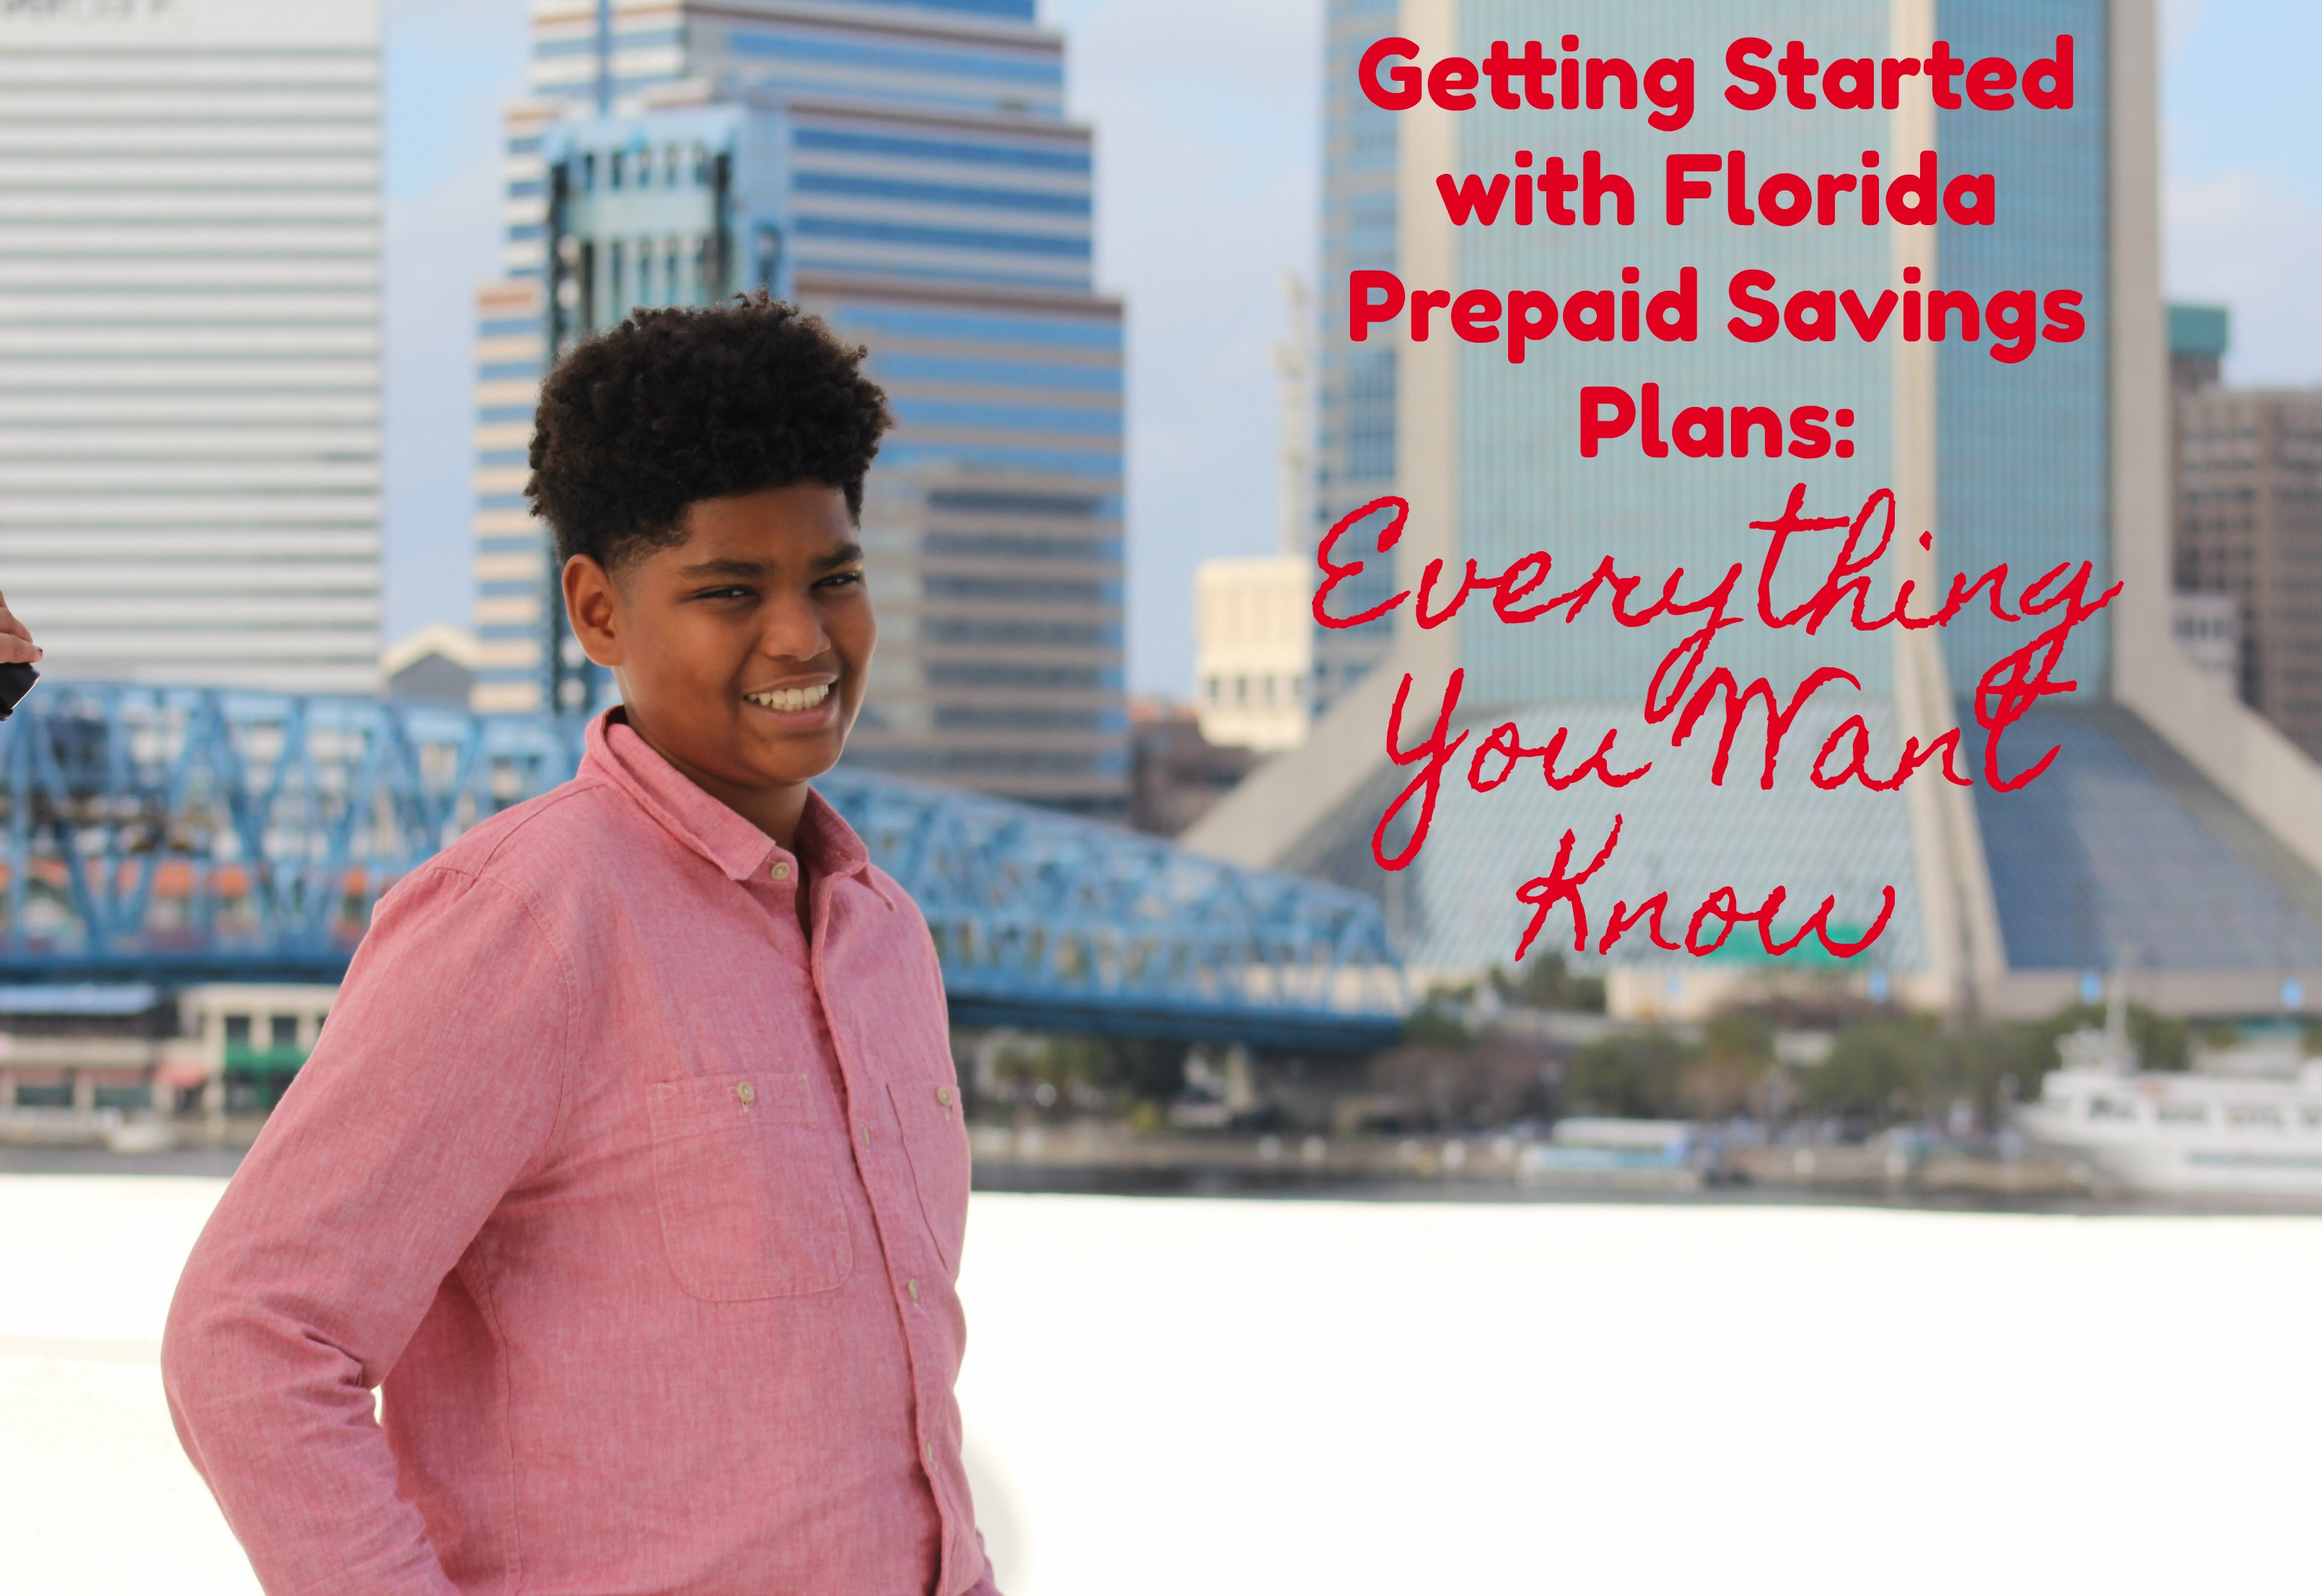 Getting Started with Florida Prepaid Savings Plans